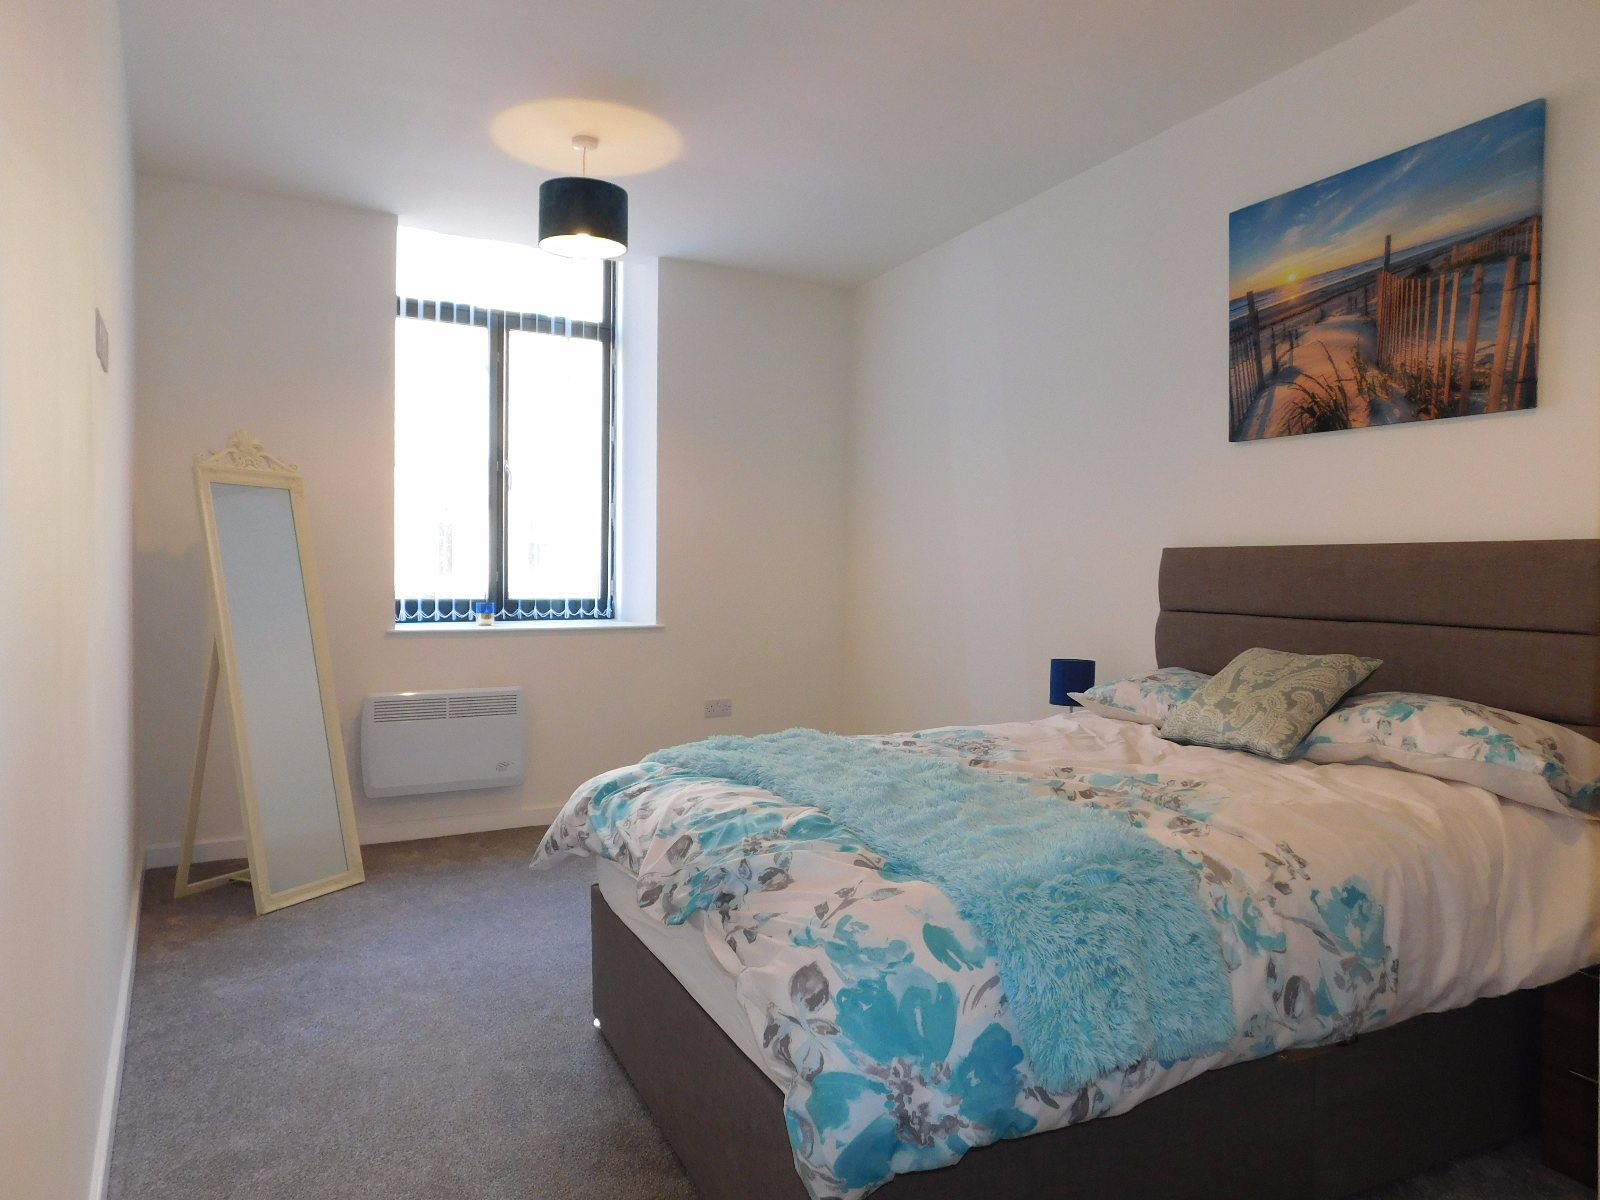 1 room in Haggerston, Spitalfields, London, E1 6AG RoomsLocal image